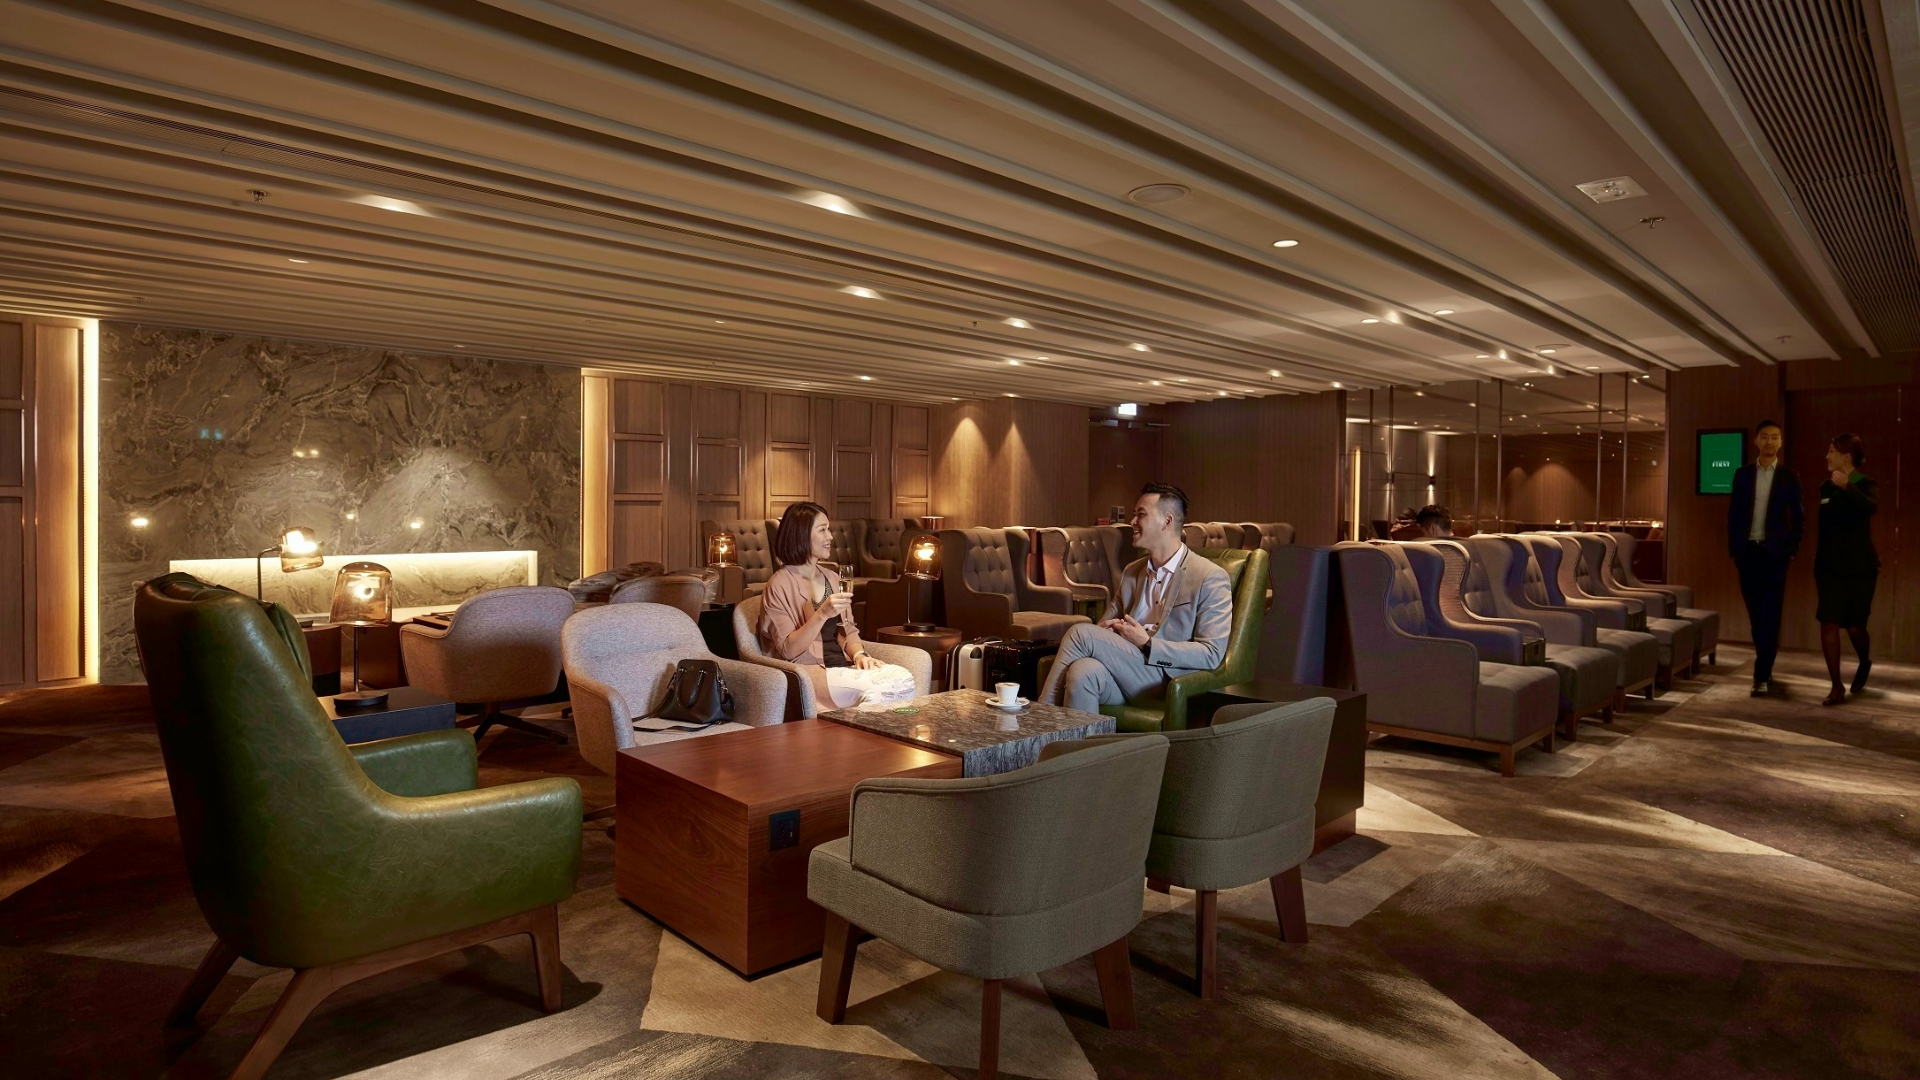 Plaza Premium First HKIA - featured image